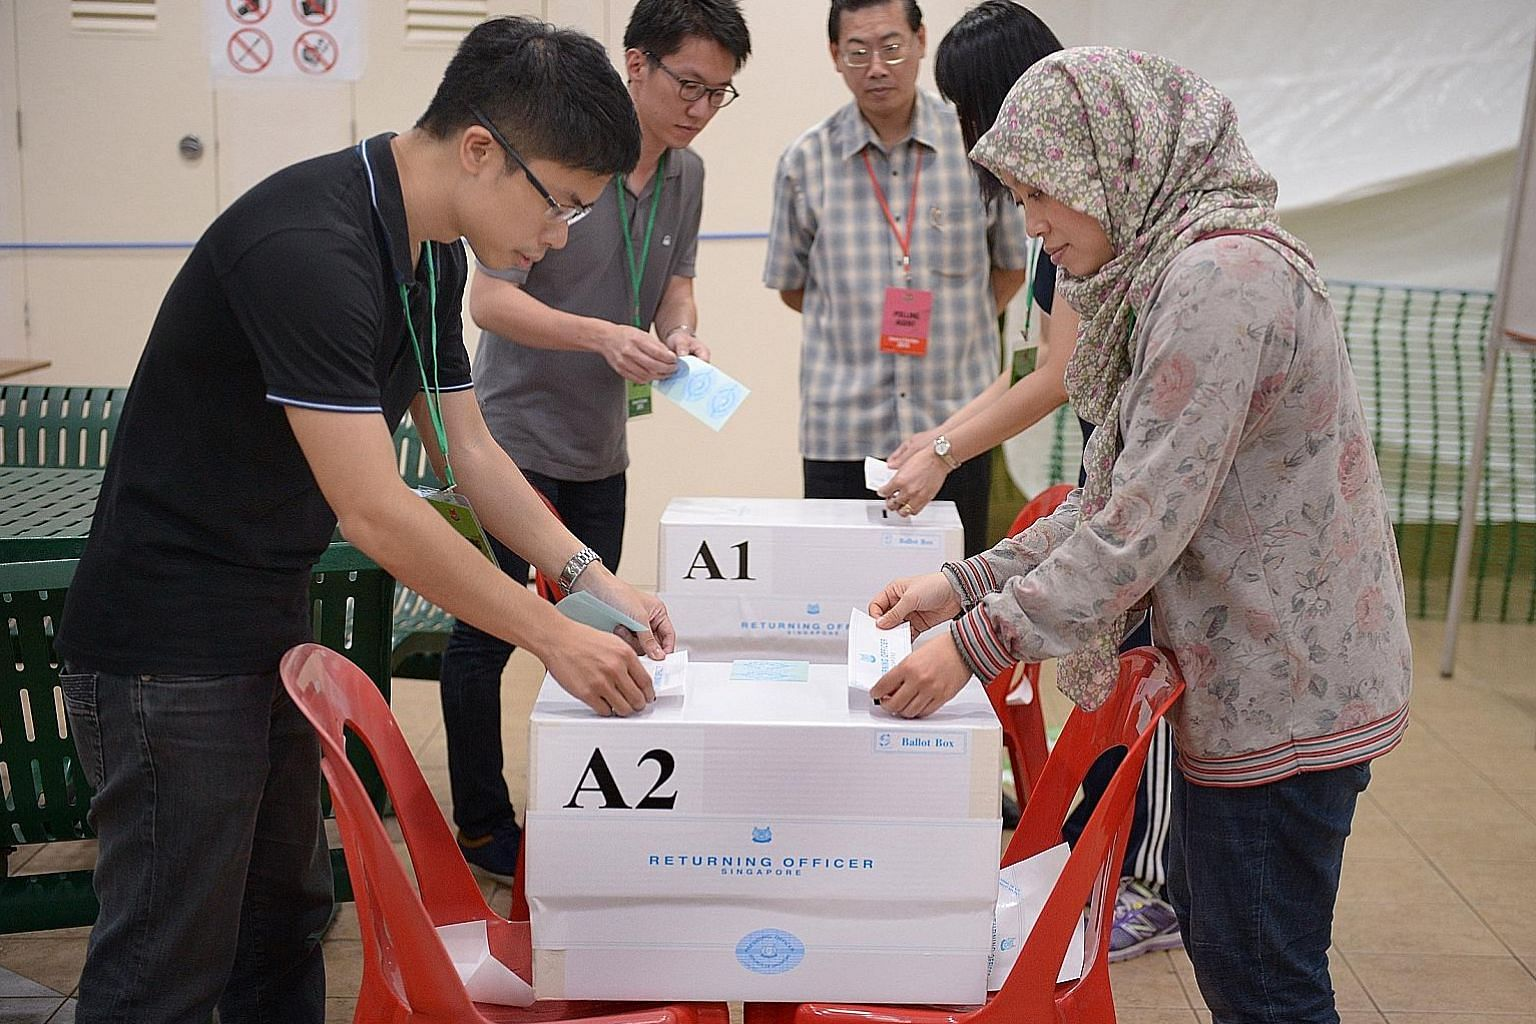 The Parliamentary Elections (Covid-19 Special Arrangements) Bill makes clear that the temporary arrangements being proposed will apply only to a parliamentary election held on or before April 14 next year, which is the deadline for the next general e